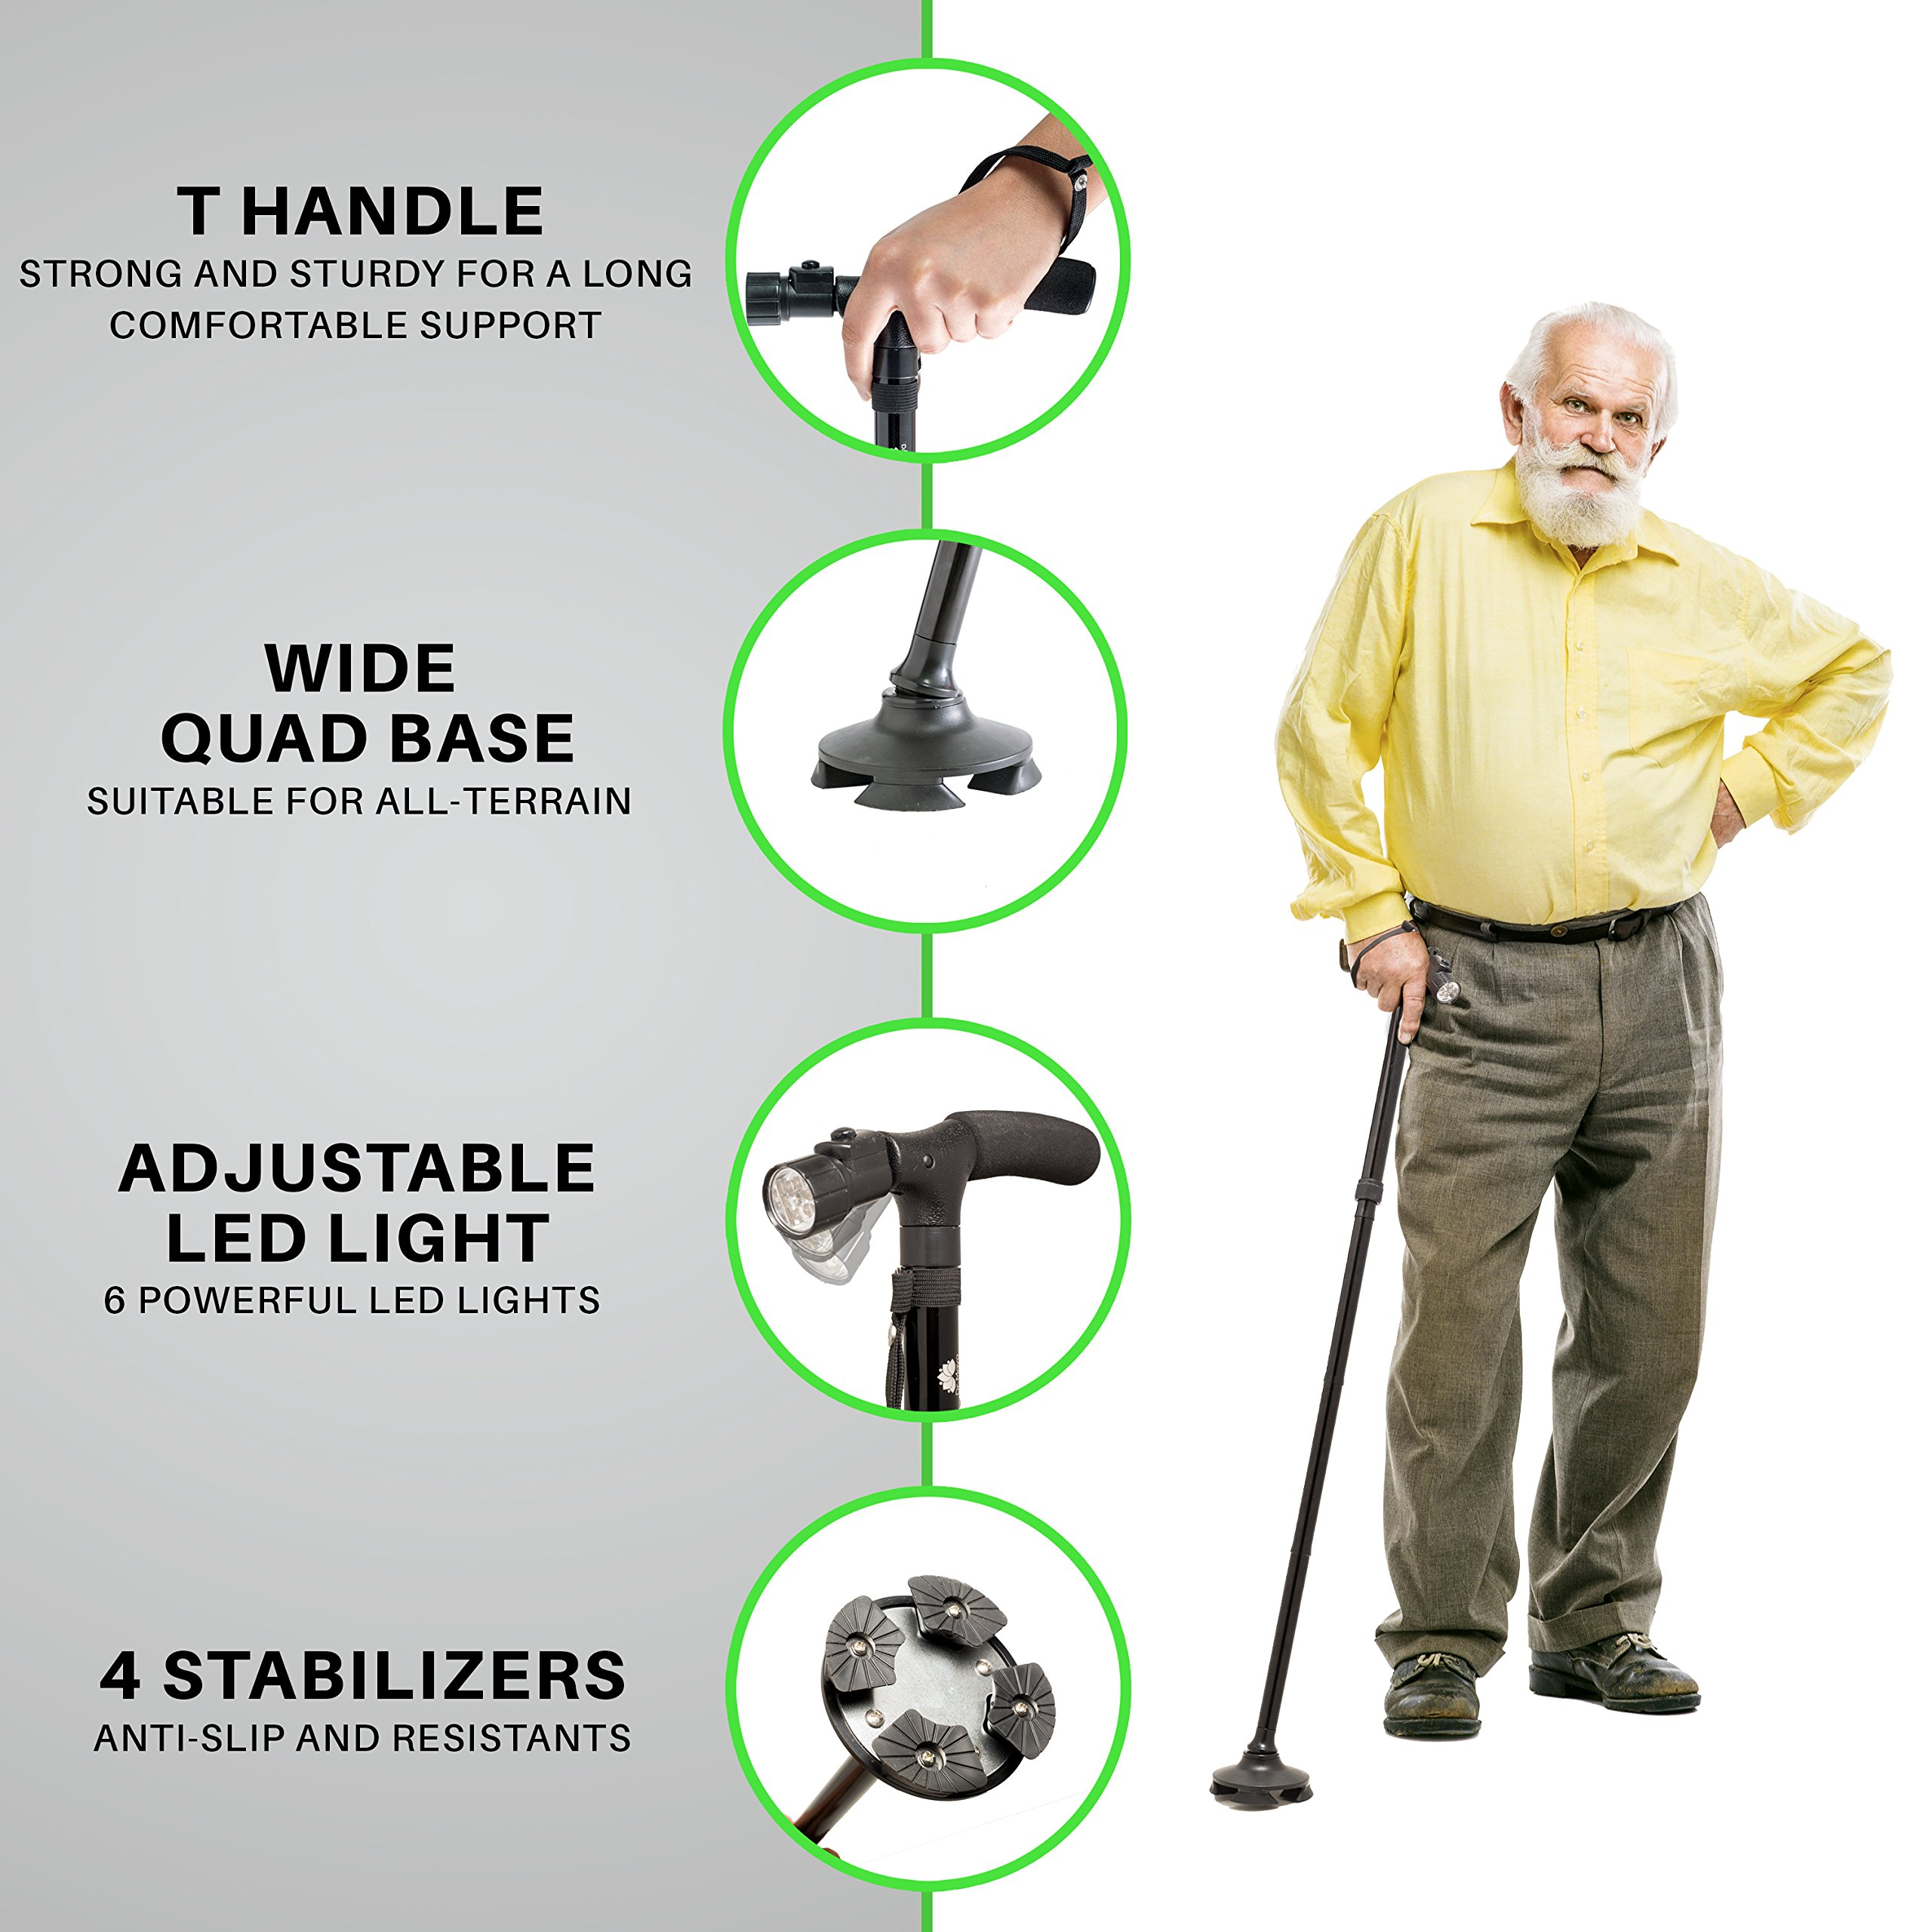 Walking Cane by Dr. Maya with Free Cane Tips & LED Lights - Lightweight, Adjustable, Foldable, Pivoting Base, Quad Travel Balance Stick Support for Elderly Men and Women - Walker Gift for Seniors! by Dr. Maya (Image #8)